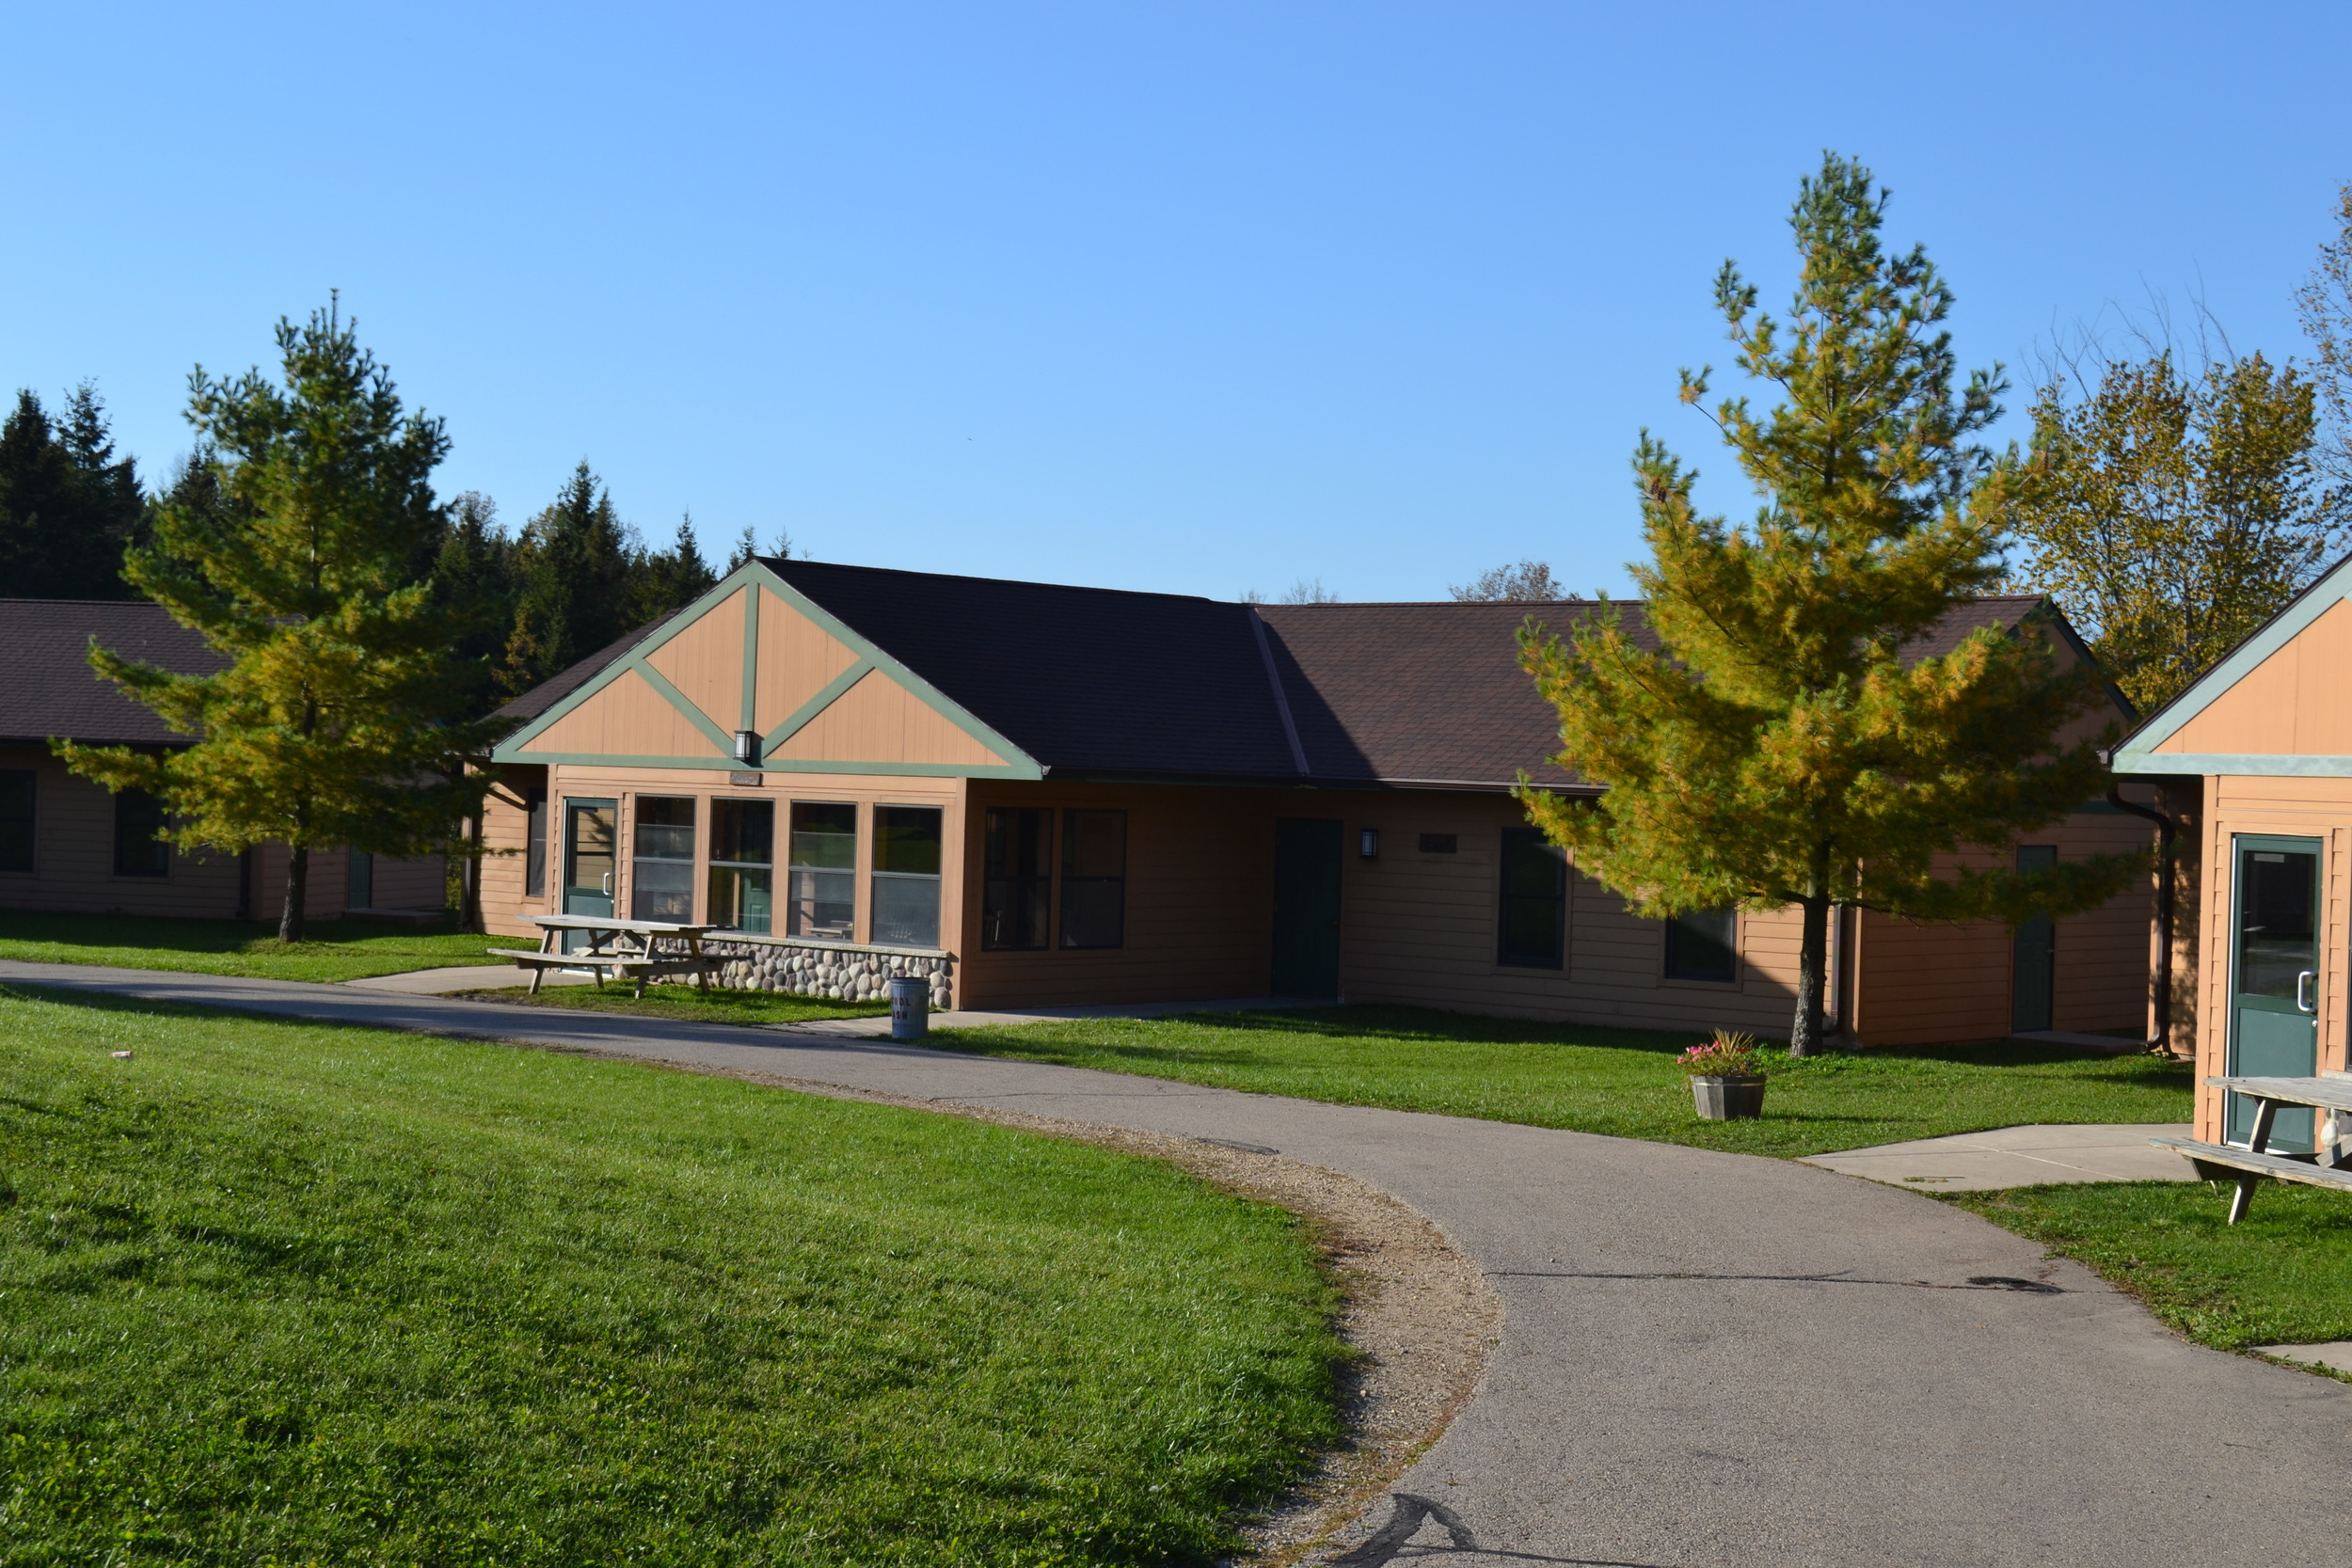 YMCA Camp Matawa